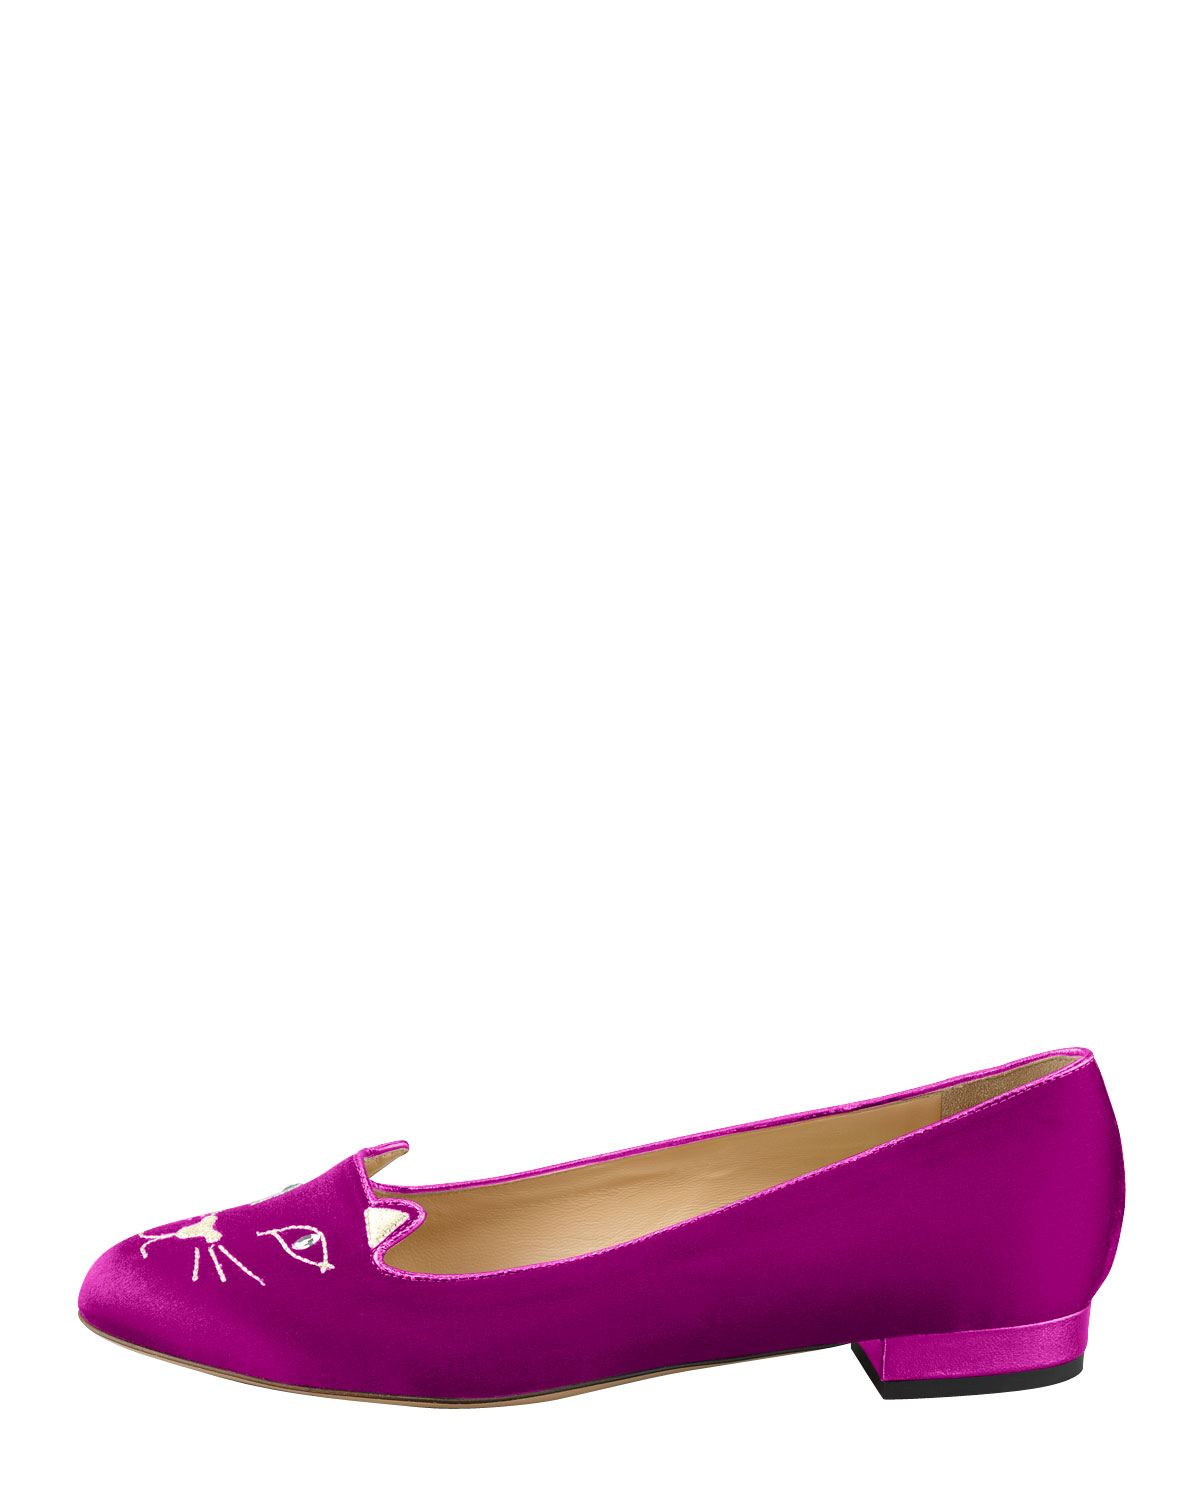 c0e6e1b015c Gallery. Previously sold at  Bergdorf Goodman · Women s Charlotte Olympia  Kitty ...